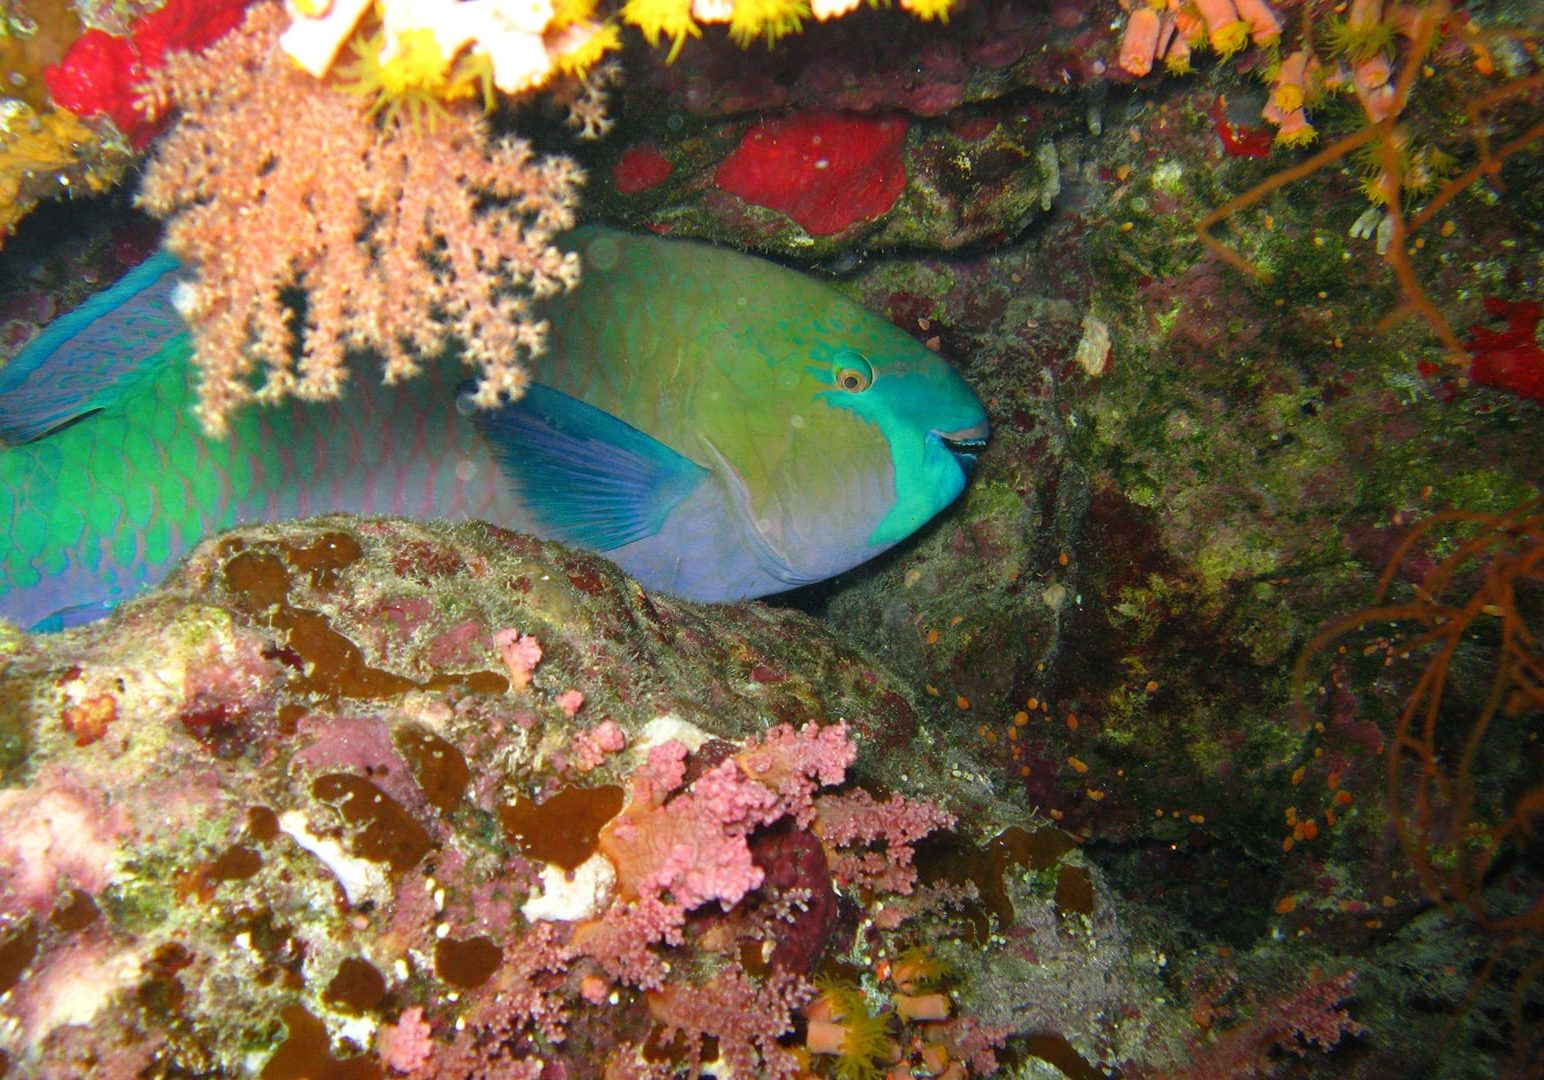 Parrot fish in coral